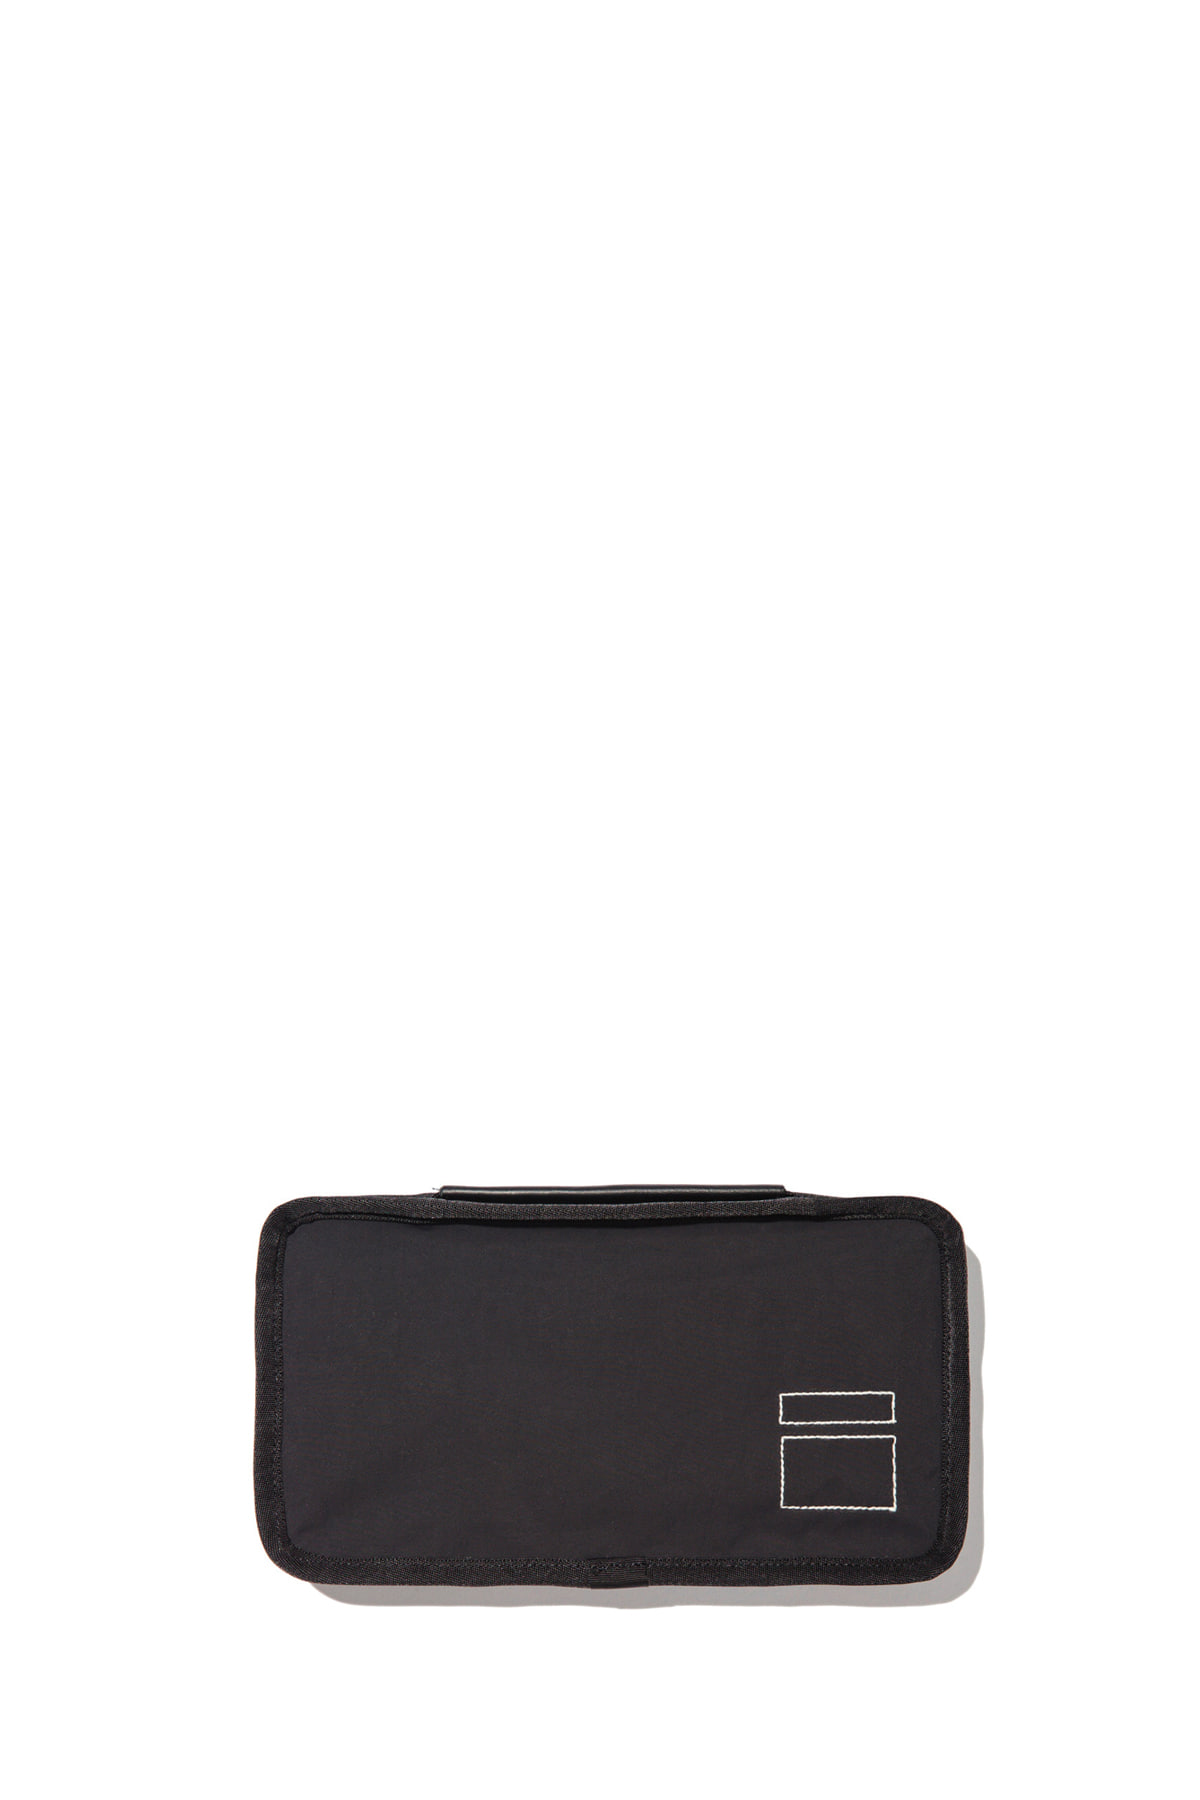 Blankof : CLG 01 PST Passport Case (Black)